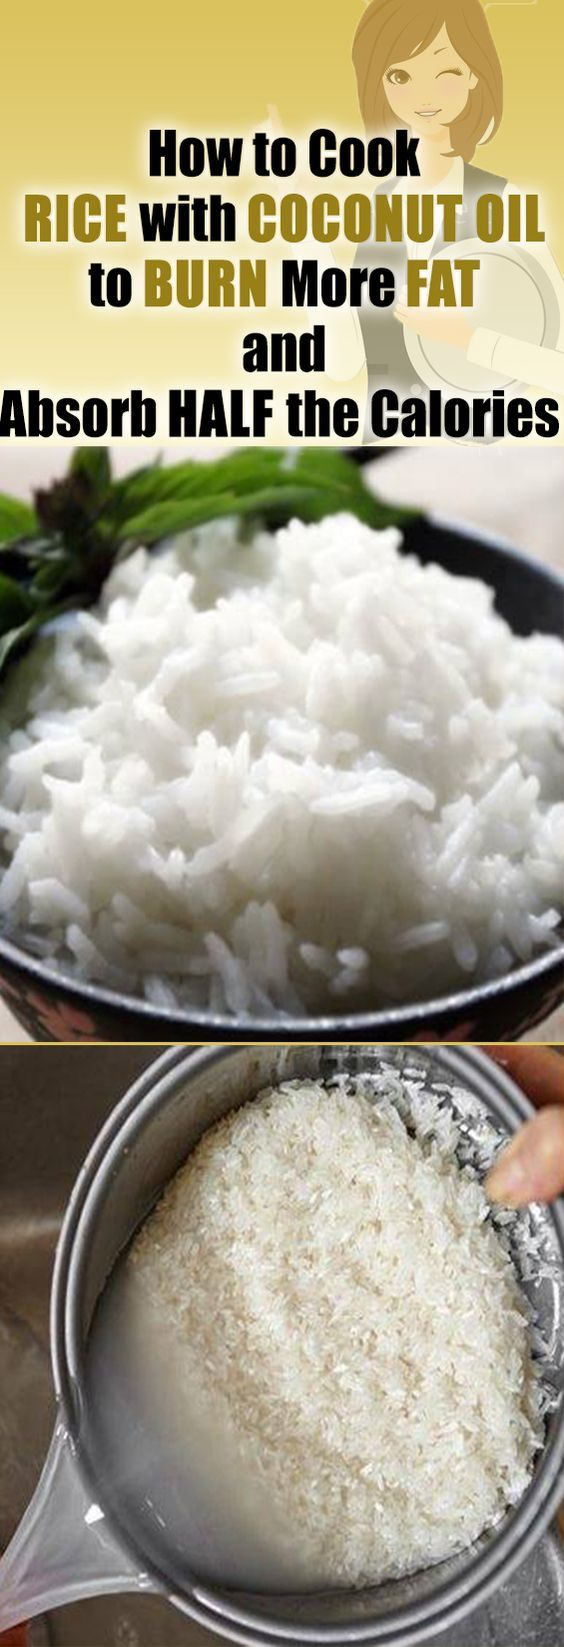 How to cook rice with coconut oil to burn more fat and reduce calories by 50%